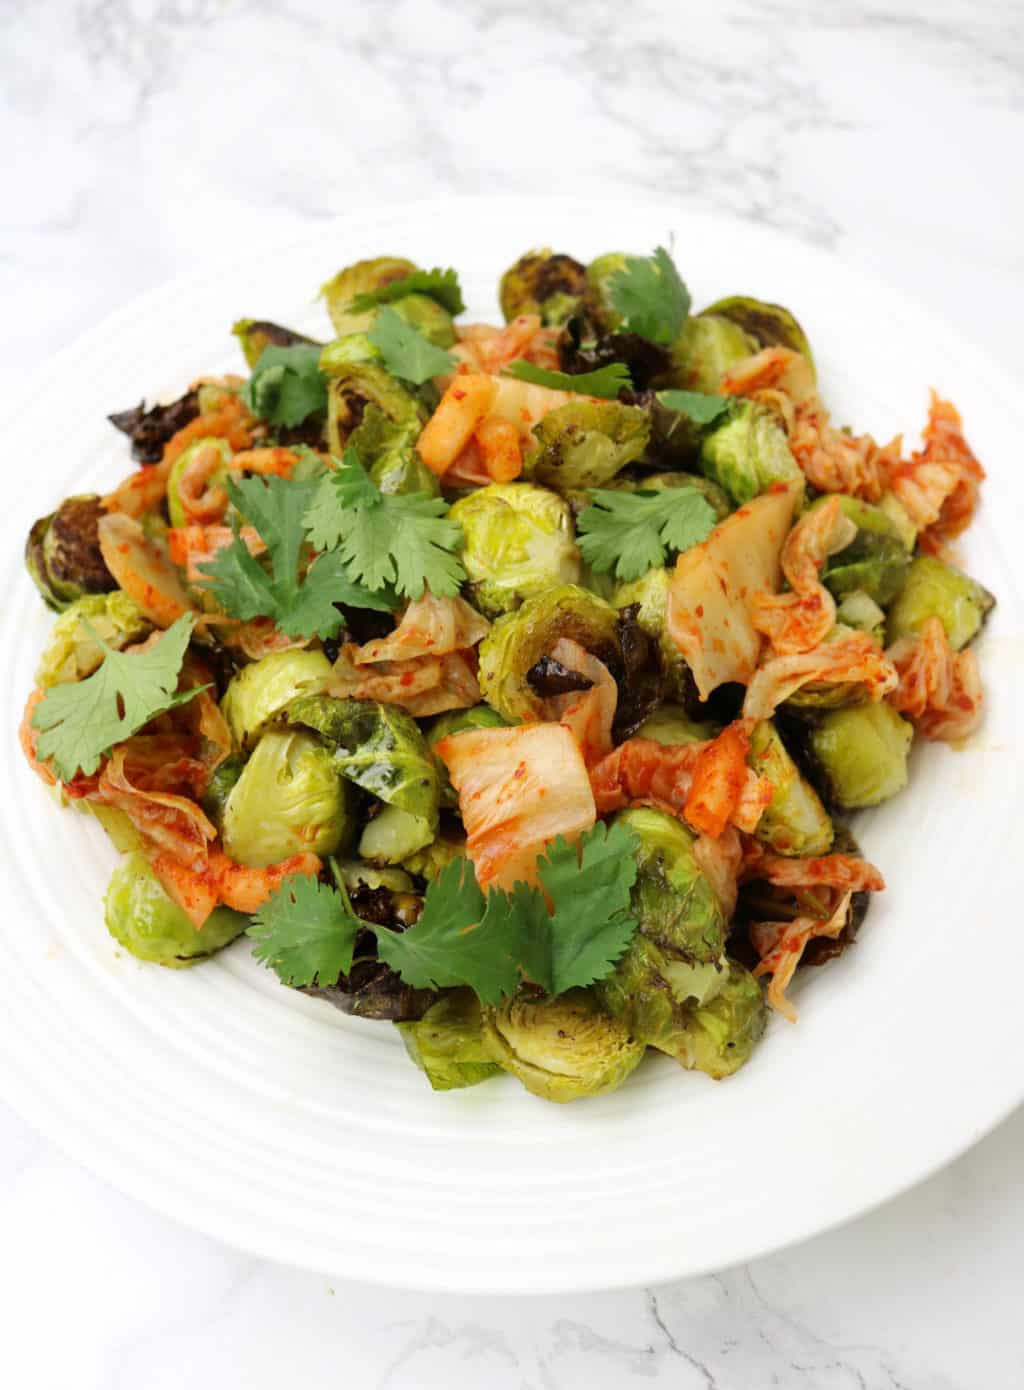 Roasted Brussels Sprouts with Kimchi - Paleo + Whole30 Recipe